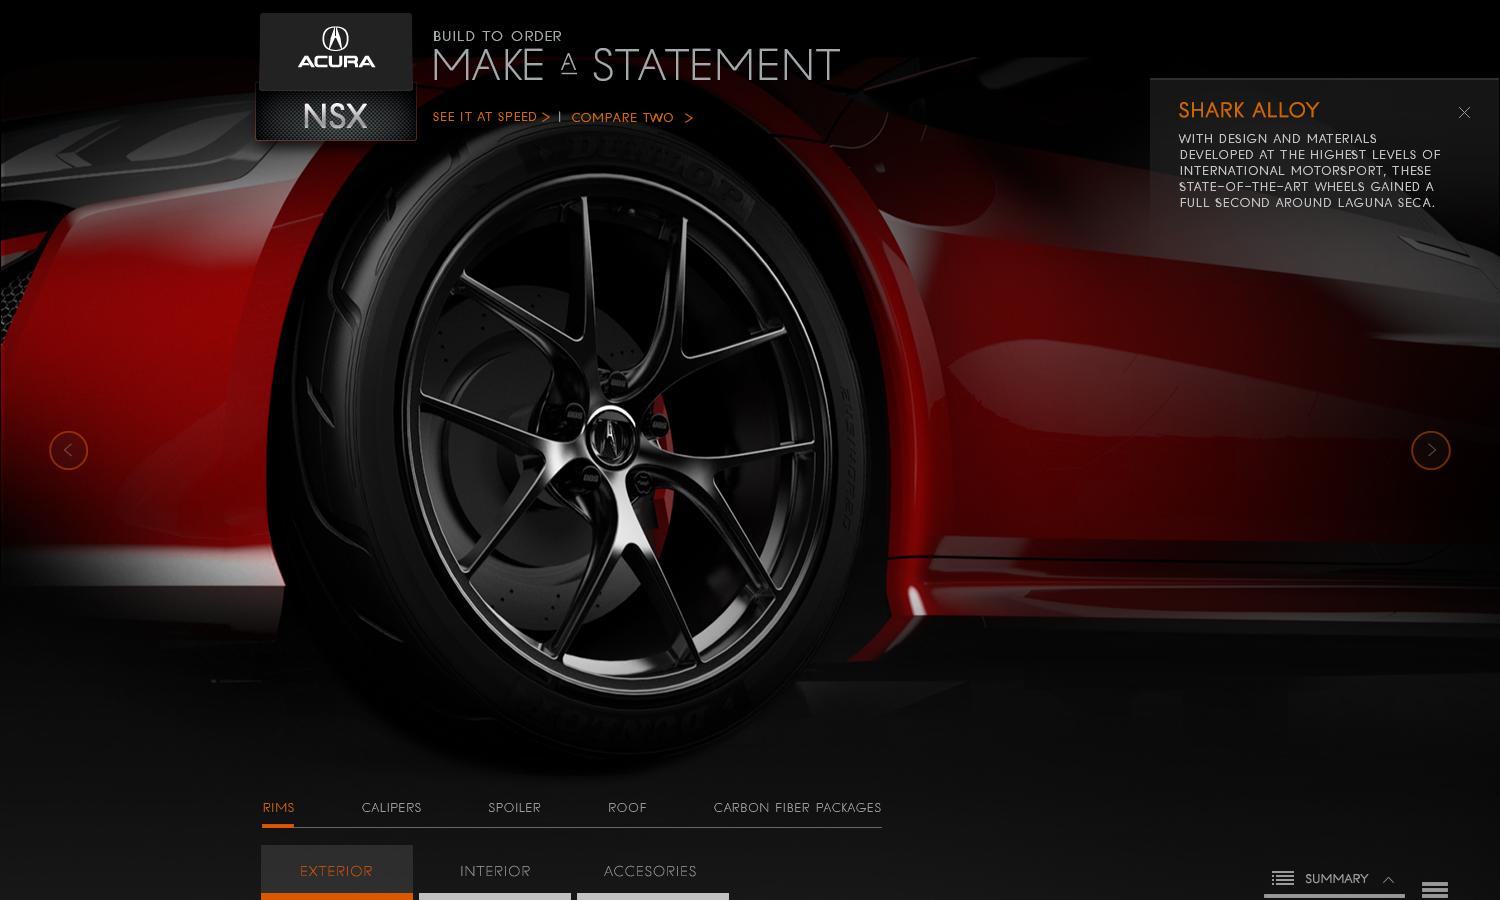 Acura_NSX_BTO_Concept_20.png